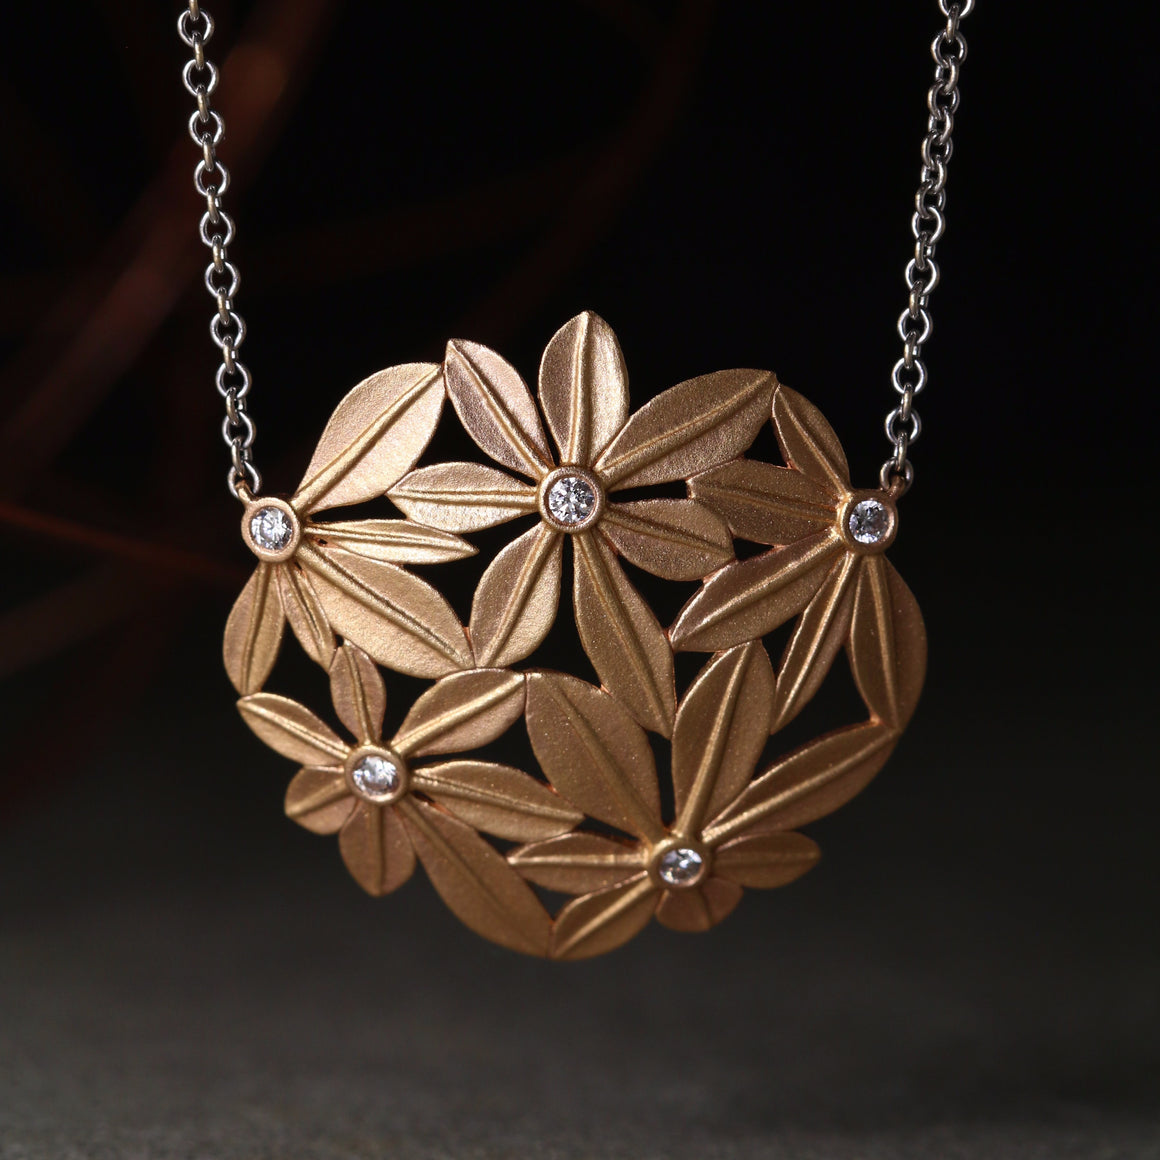 Botanica Necklace in Rose Gold - Large